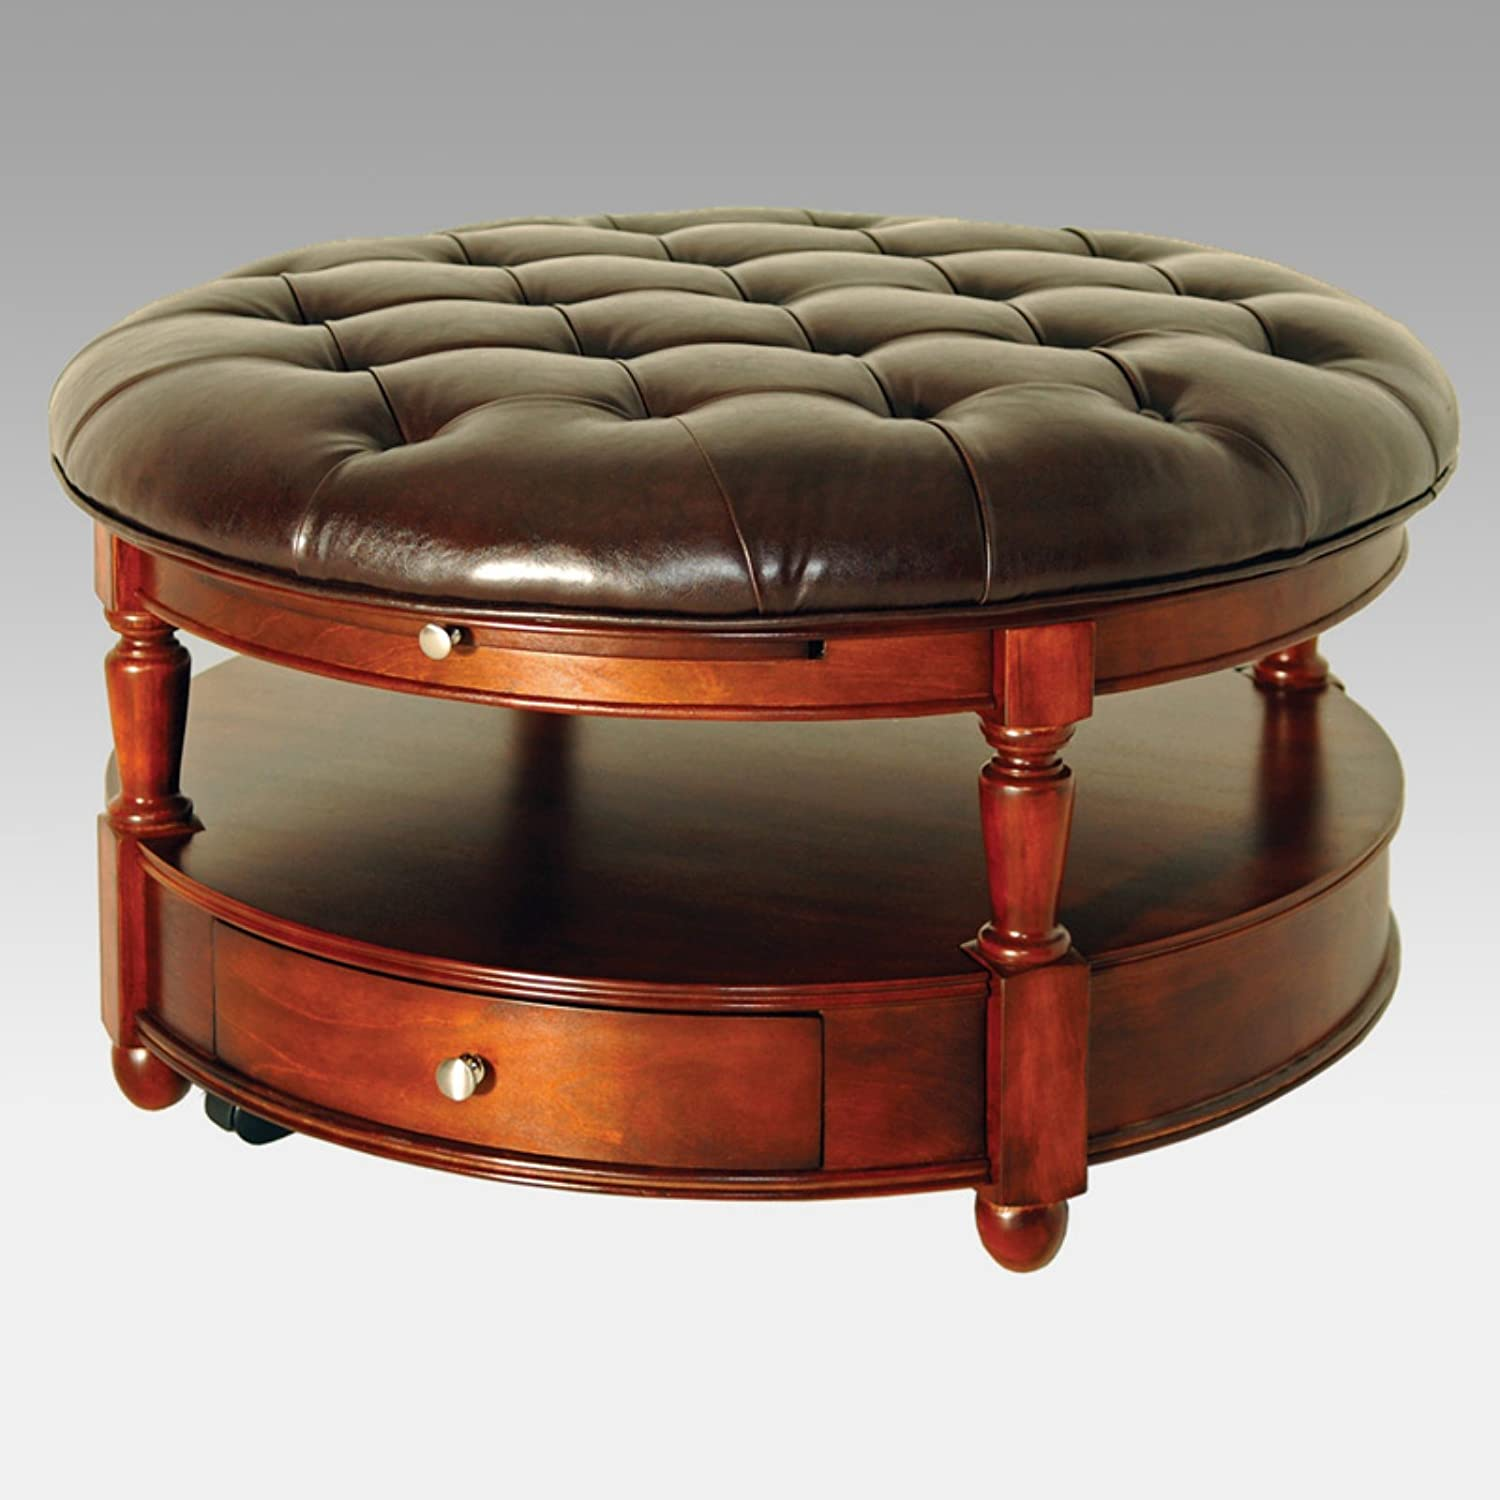 Large round tufted leather ottomans with storage olivia 39 s place Round leather ottoman coffee table